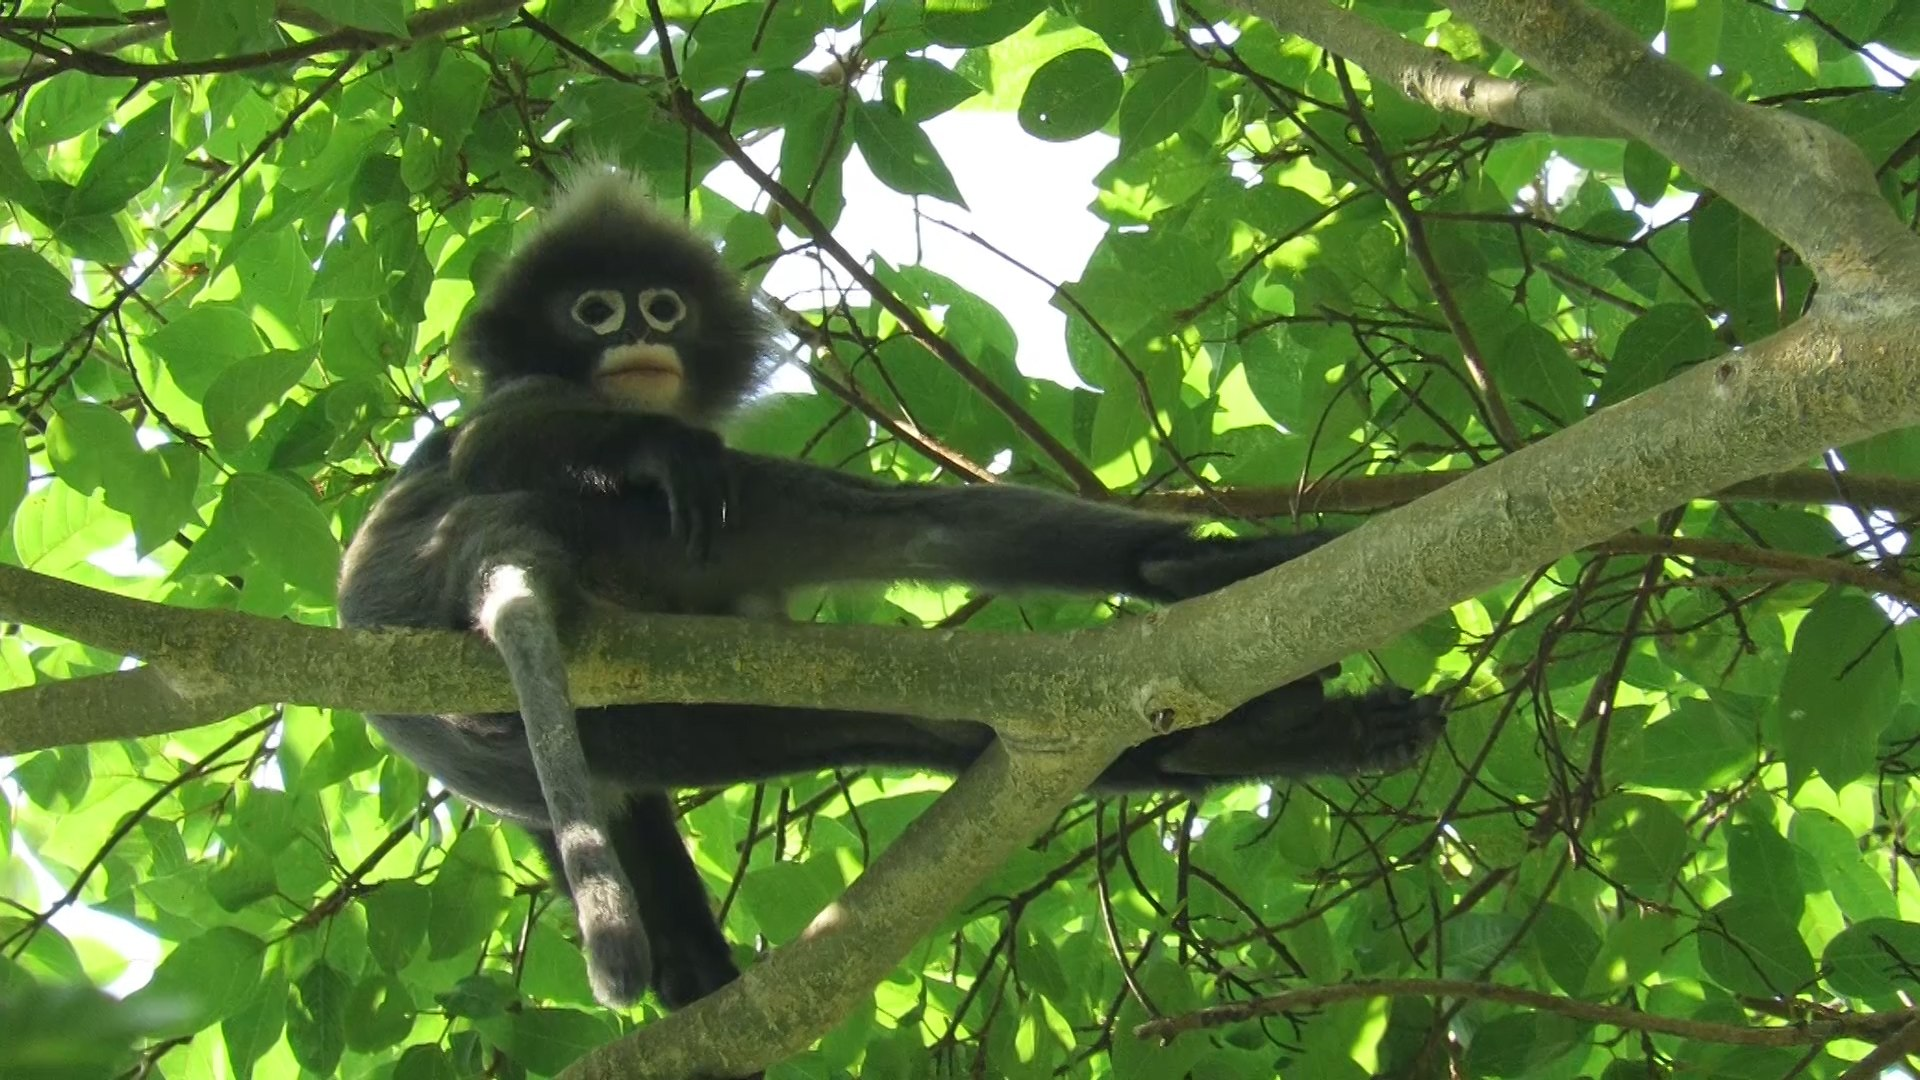 Phayre's Leaf Monkey: The Primate with Spectacles